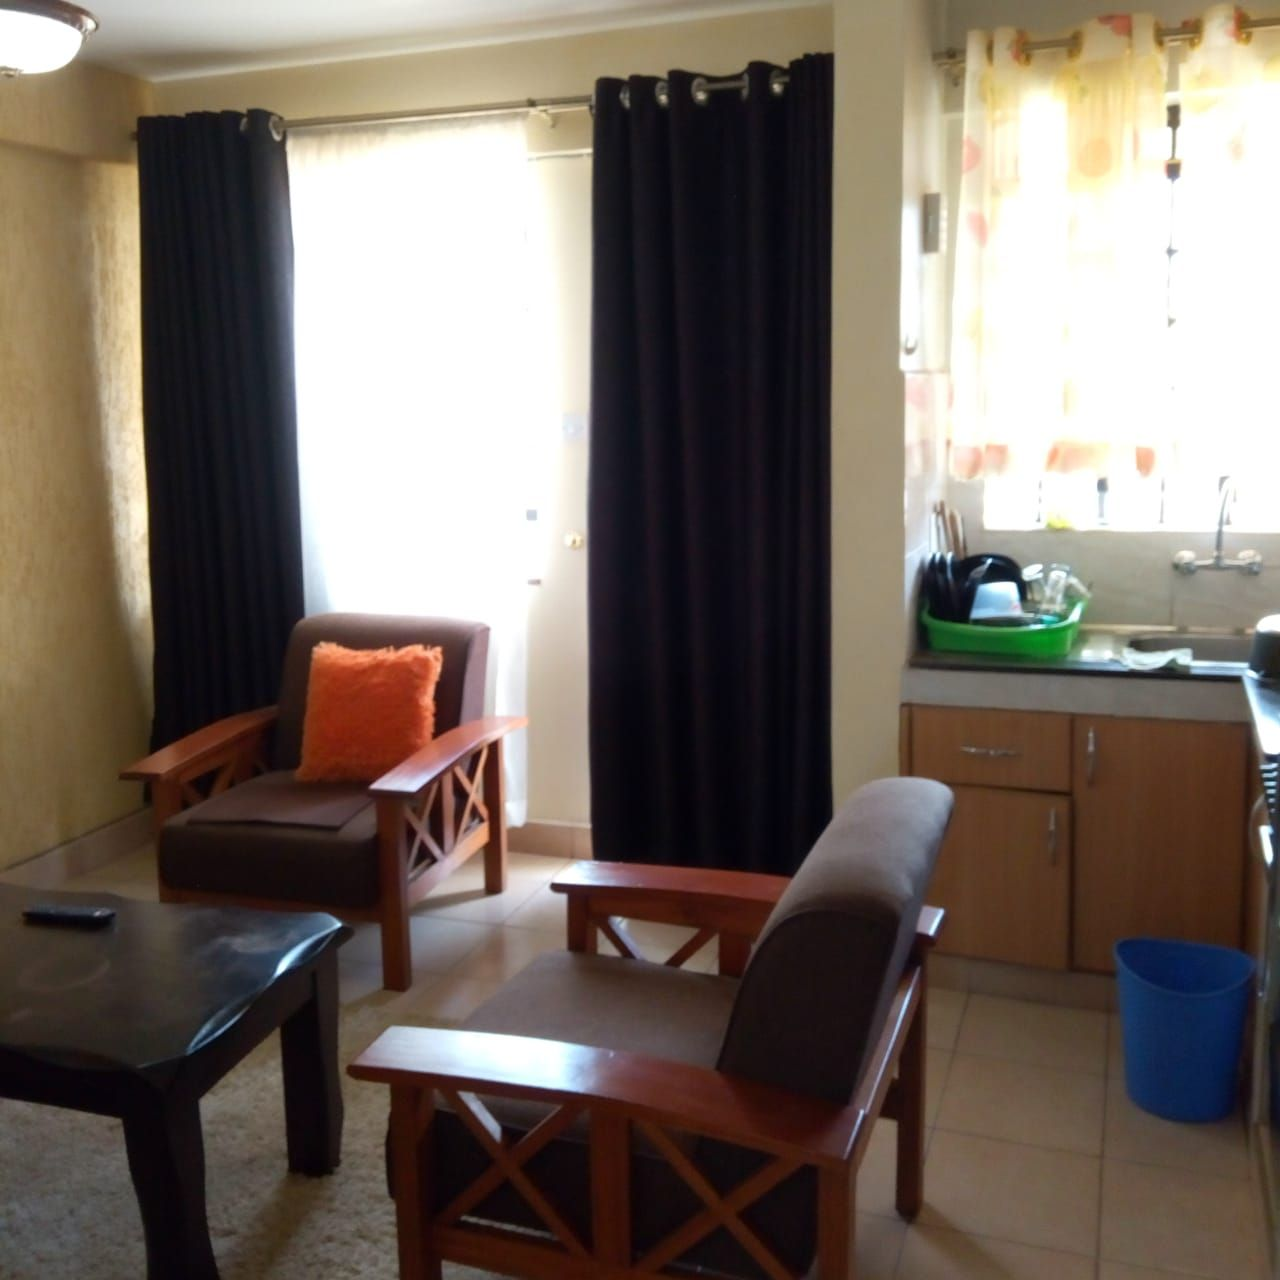 1 Bedroom Fully Furnished Apartment At The Heart Of Nairobi Westland School Lane At Ksh 80 000 Fully Furnished Apartments Furnished Apartment Furnishings